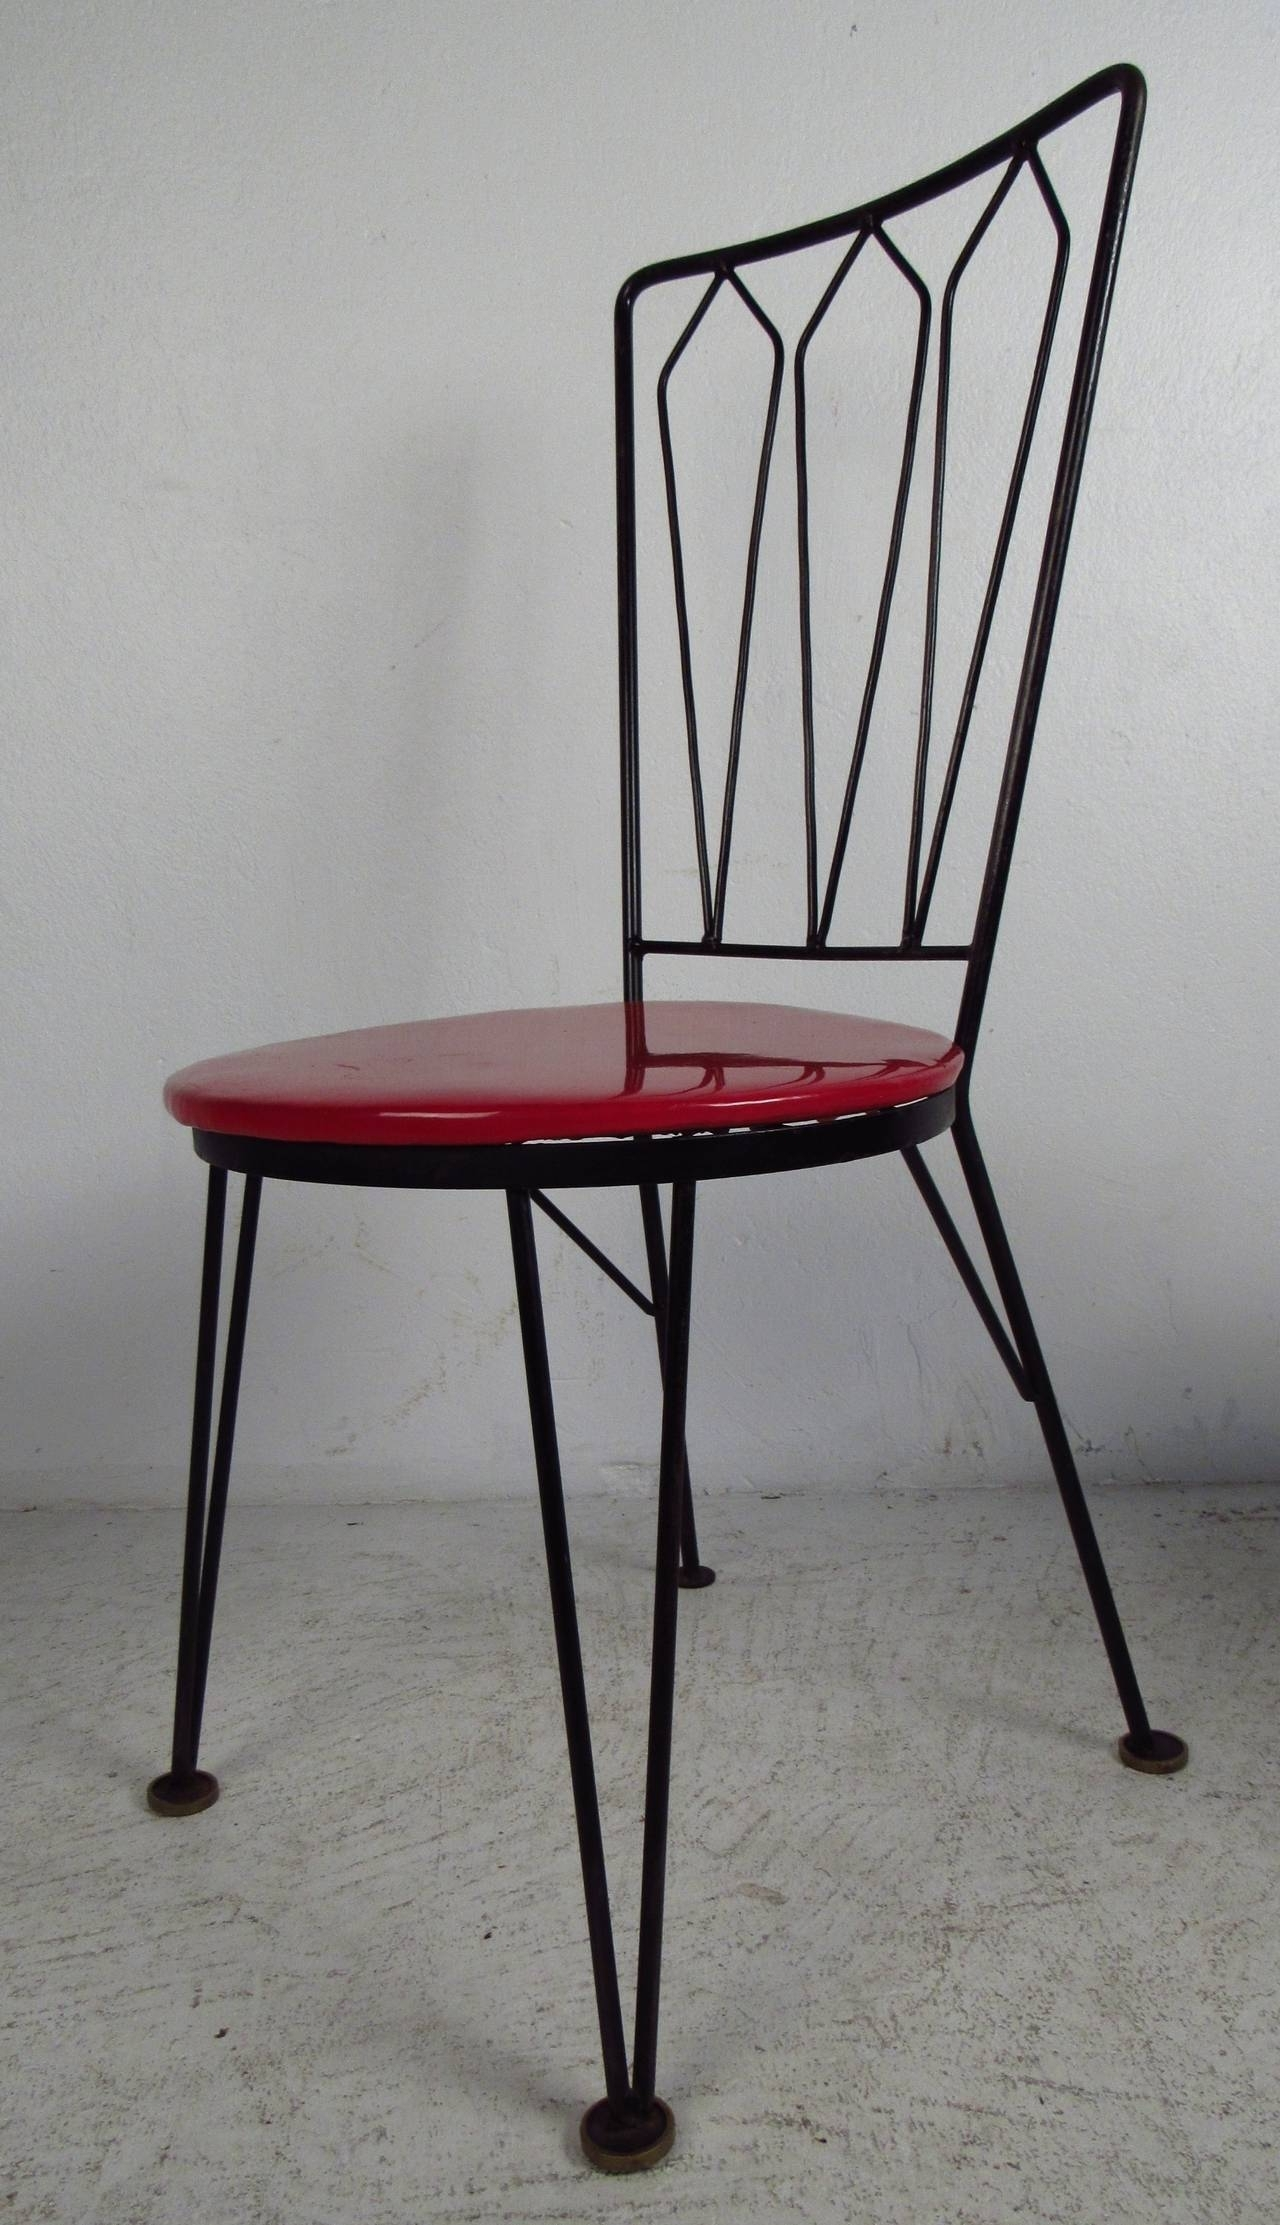 2017 Stylish Dining Chairs In Stylish Vintage Metal Dining Chairs, Circa 1950S For Sale At 1Stdibs (View 22 of 25)